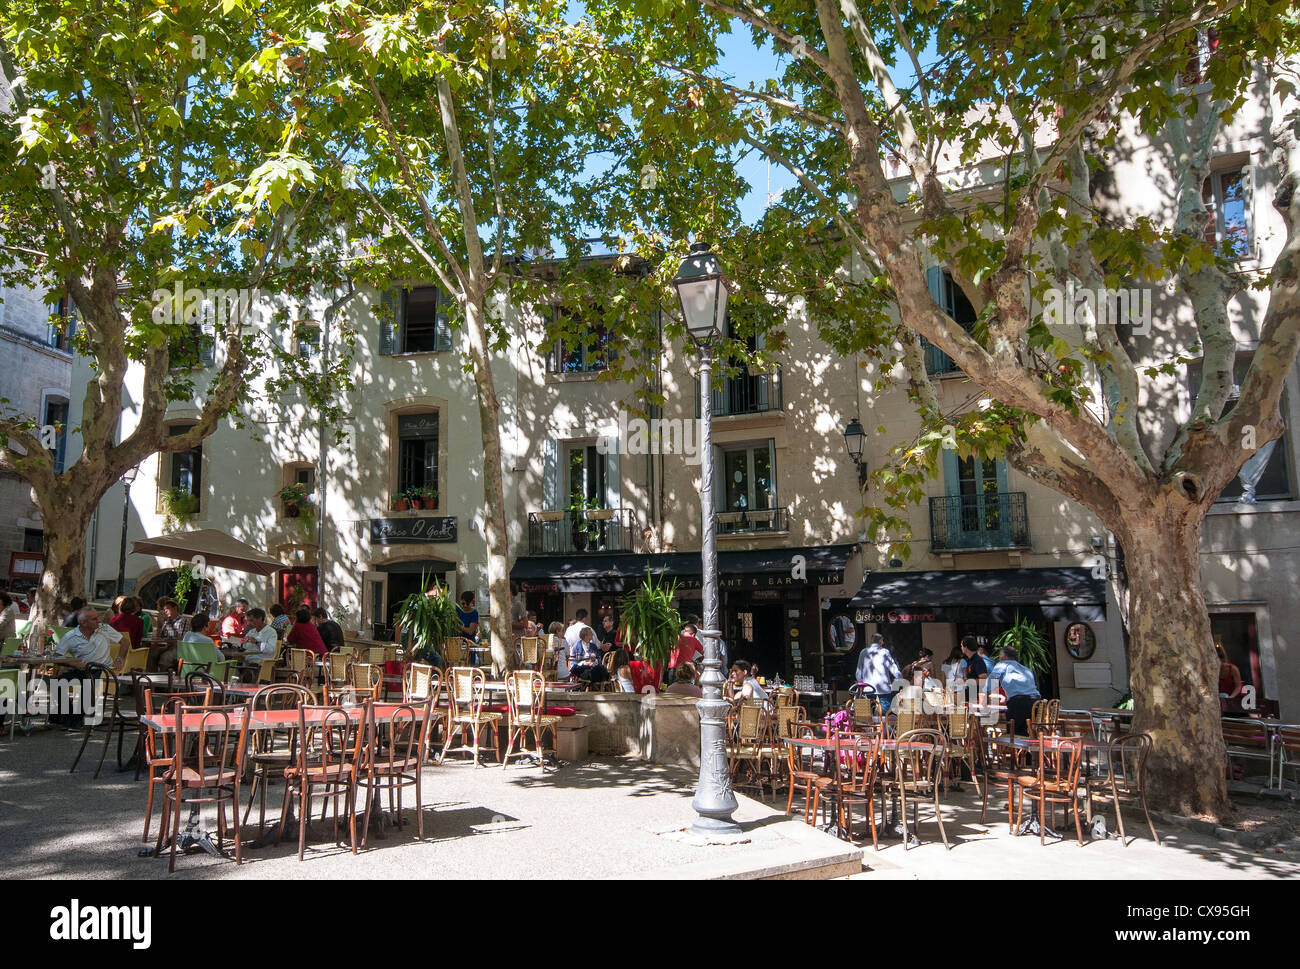 Place O Gout and the Bistrot Gourmand on Place de la Chapelle Neuve, Montpellier, France - Stock Image